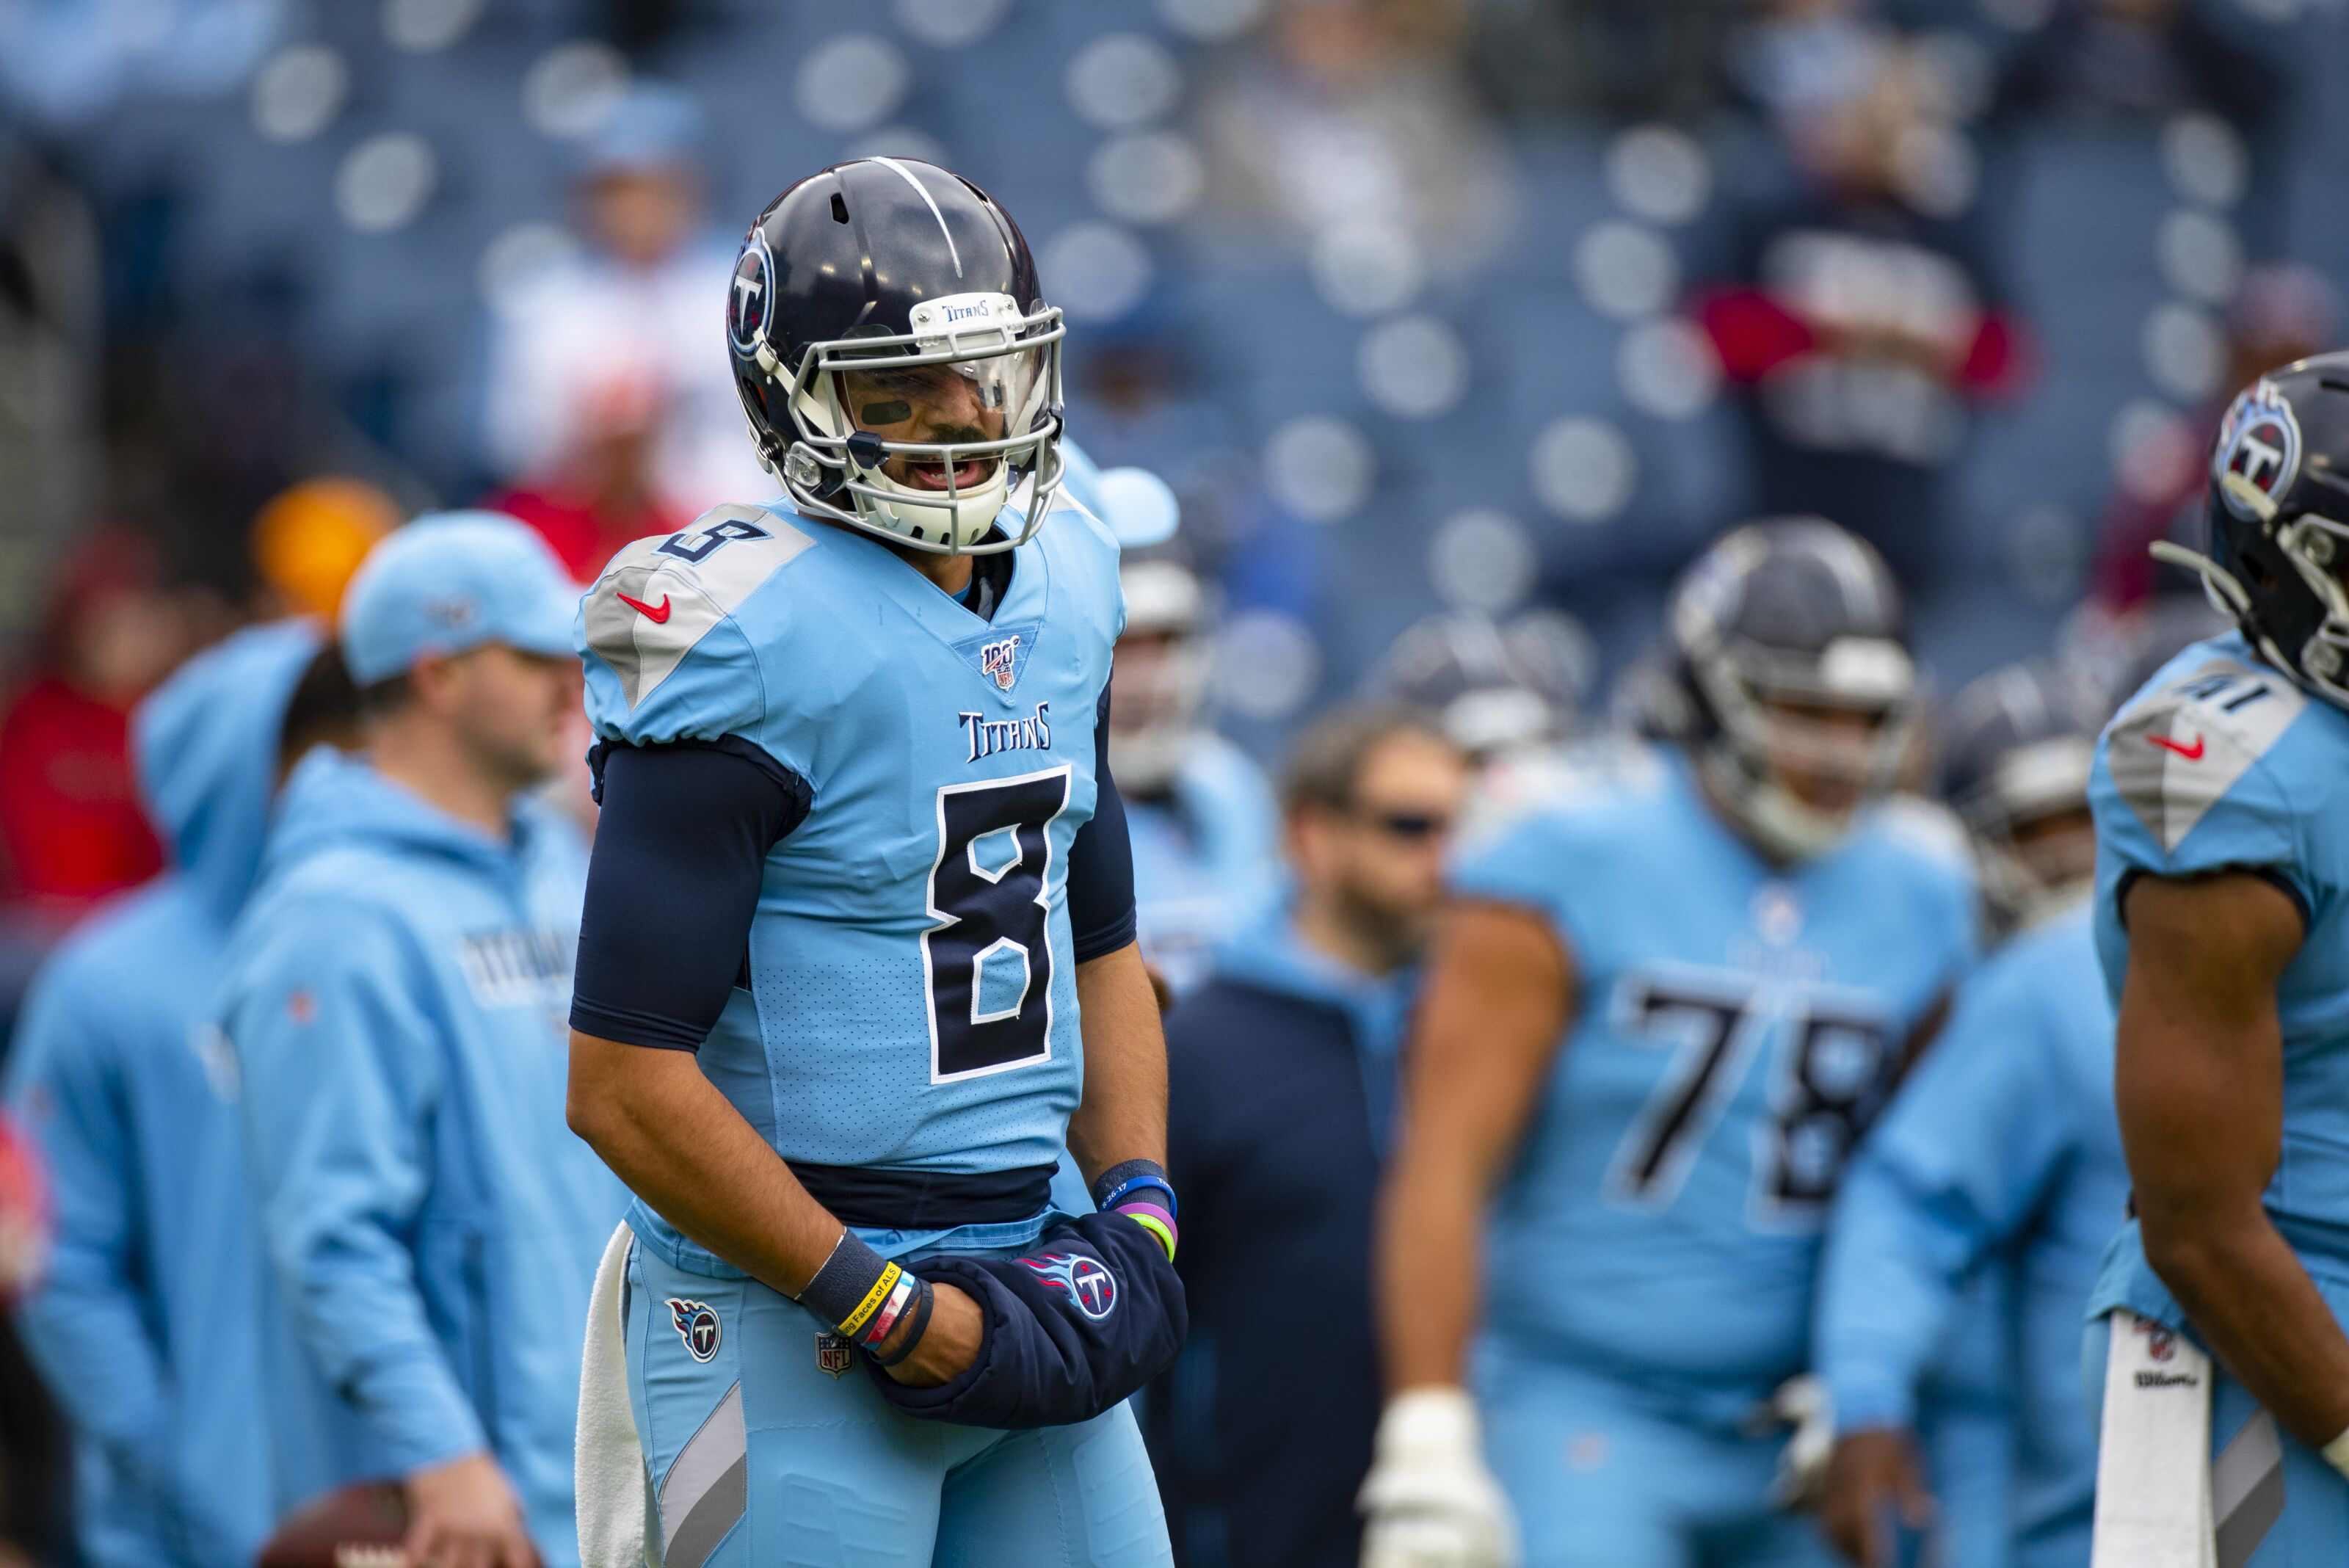 Marcus Mariota reflects on Titans career after loss to Chiefs